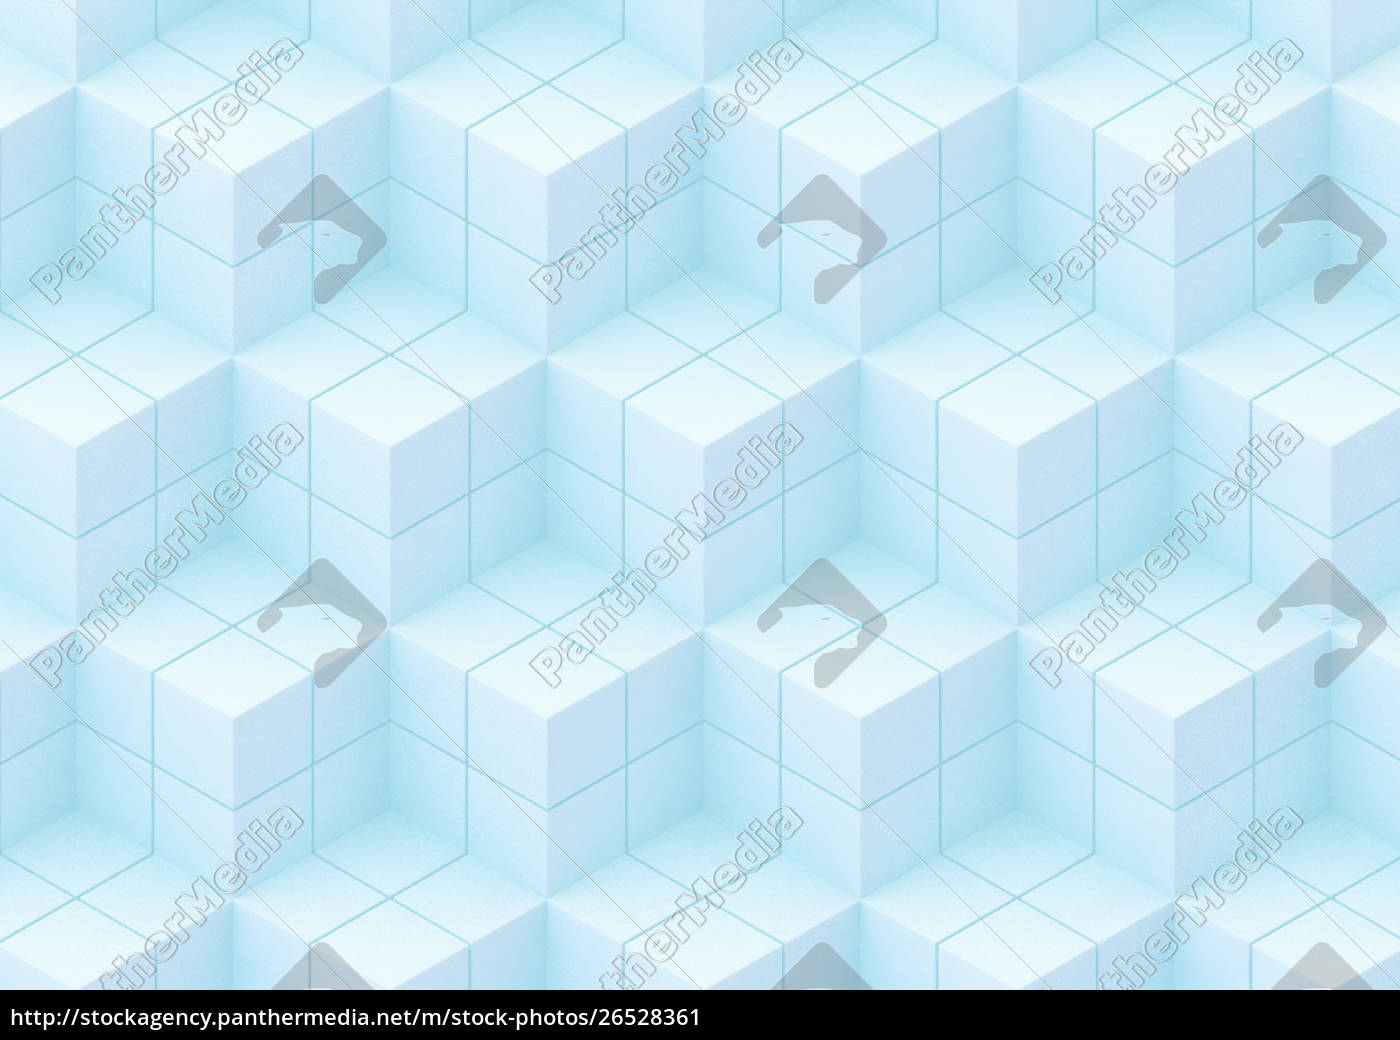 full, frame, abstract, stepped, cube, pattern - 26528361